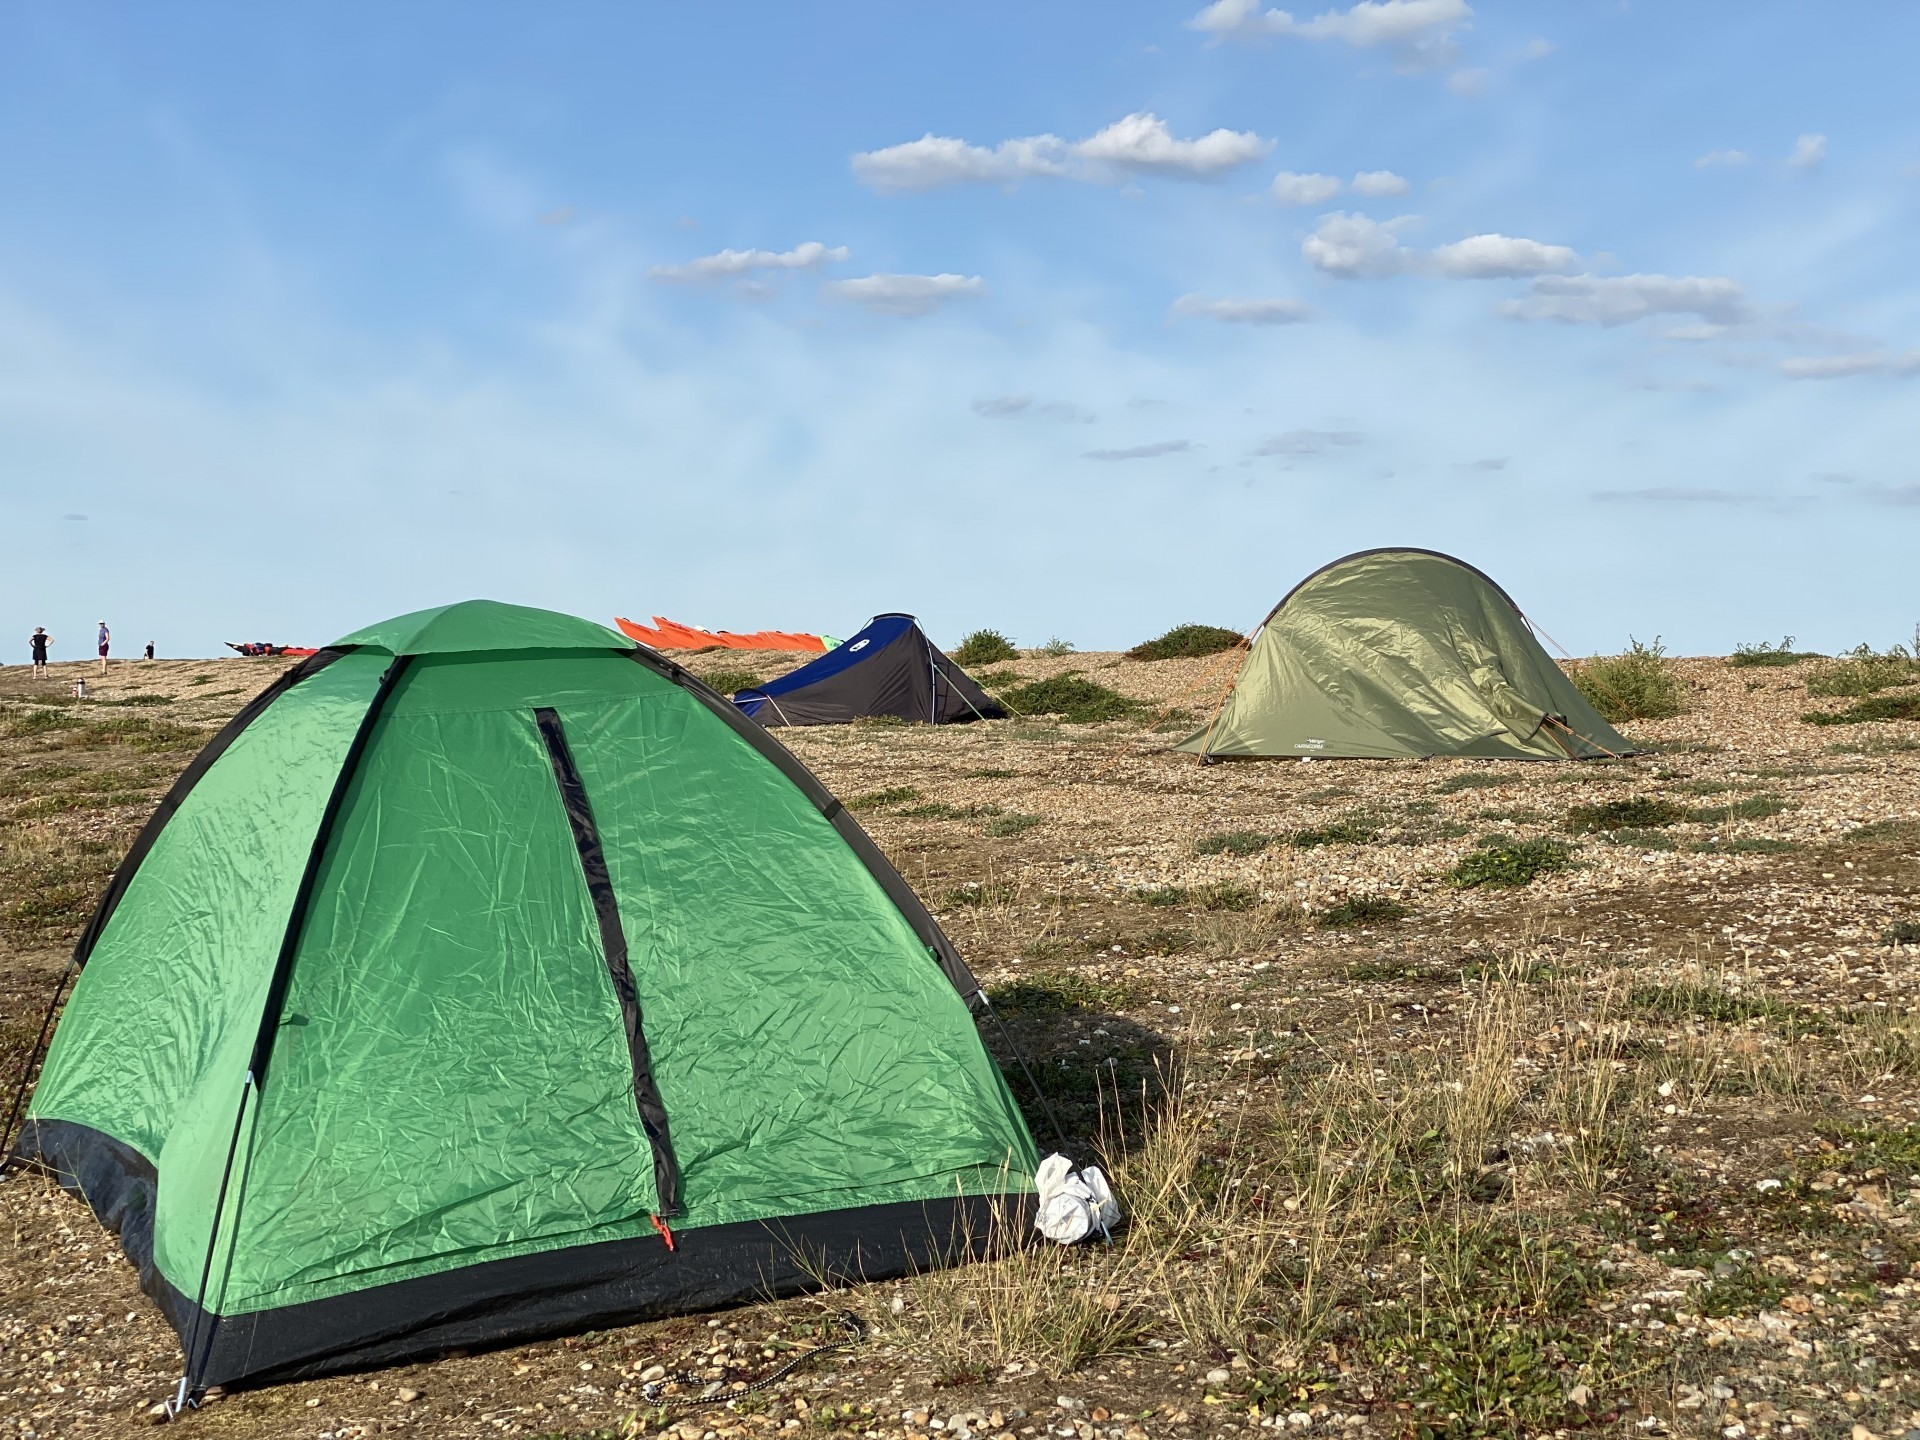 Tents pitched for the all inclusive wild camping with meals and equipment included